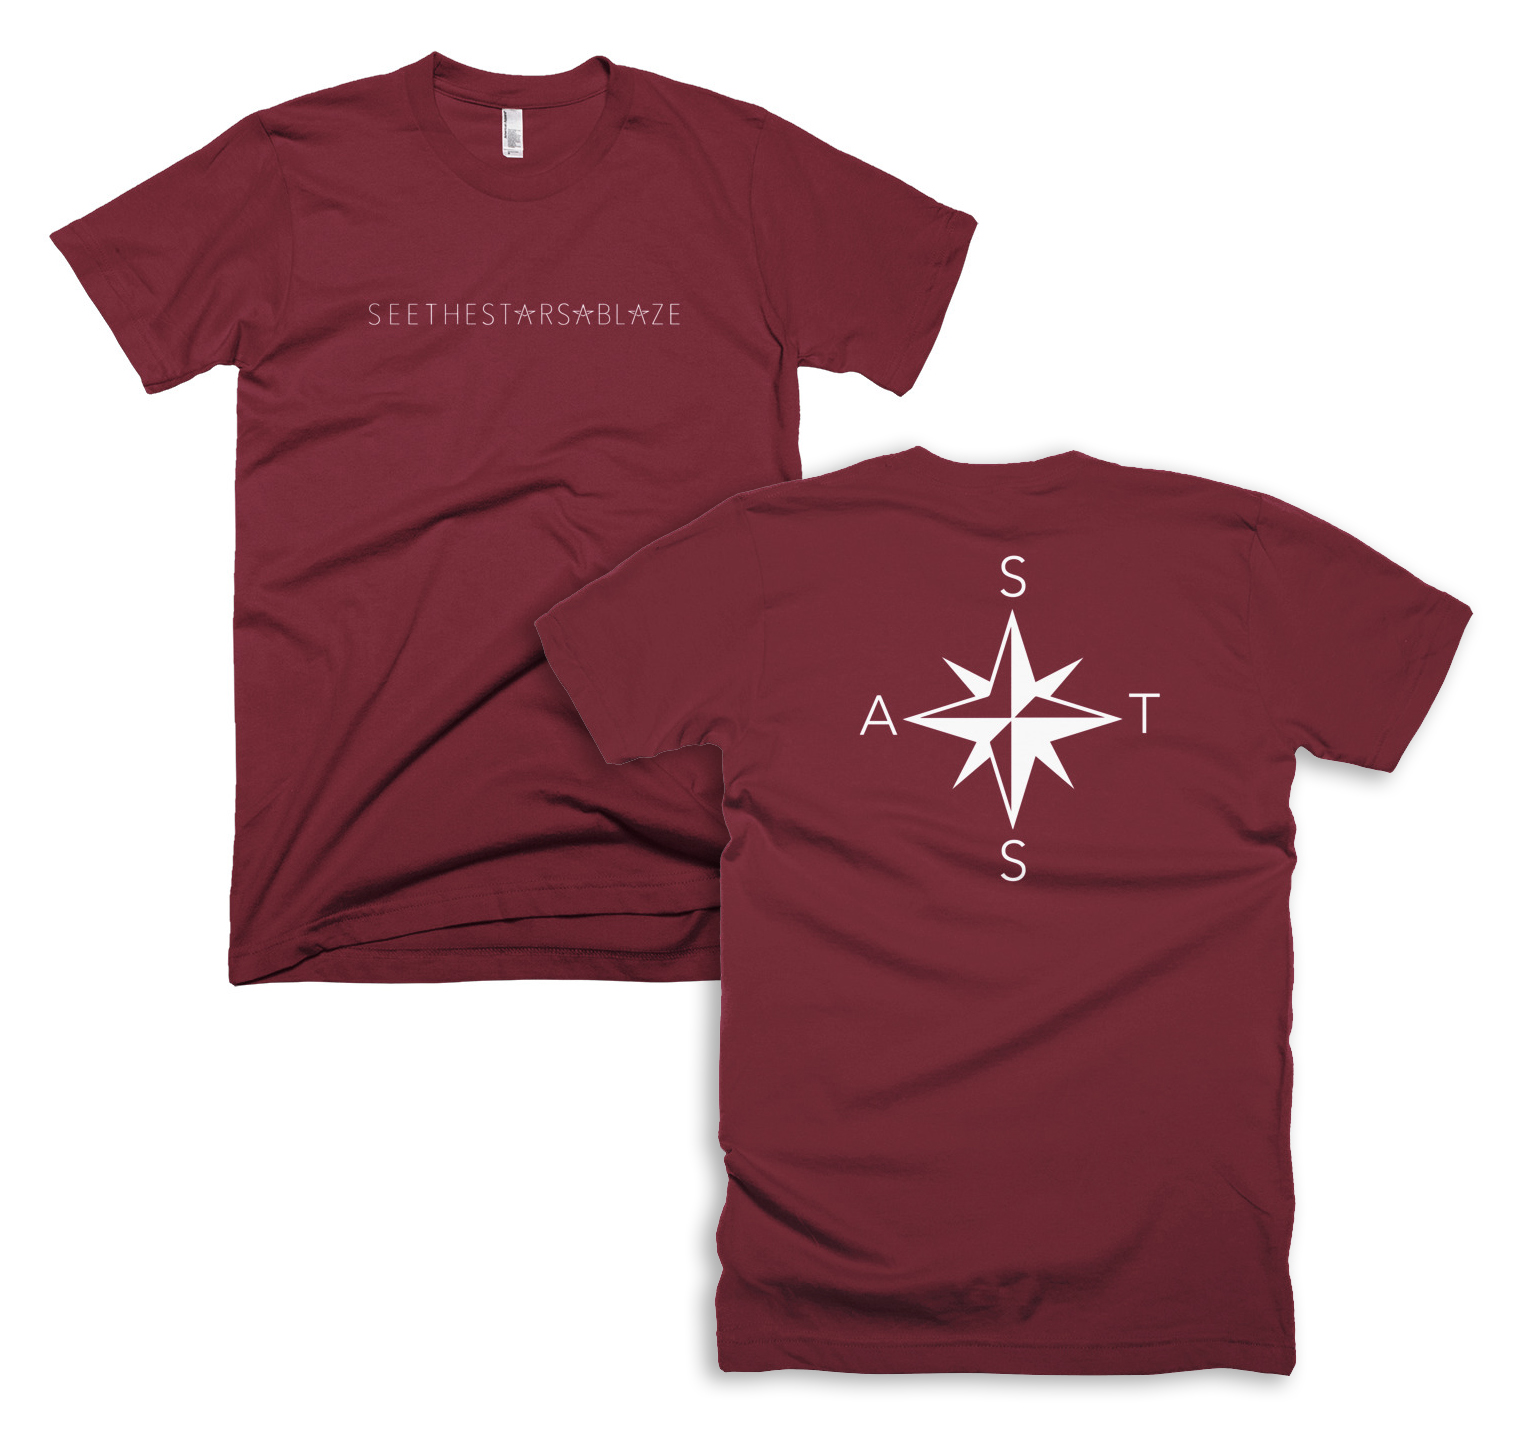 Compass Tee   My second tattoo was a compass on my forearm to remind myself to always follow my heart. This tee has a compass style design on the back with S.T.S.A. for See The Stars Ablaze.  (also available in black)    <shop here>